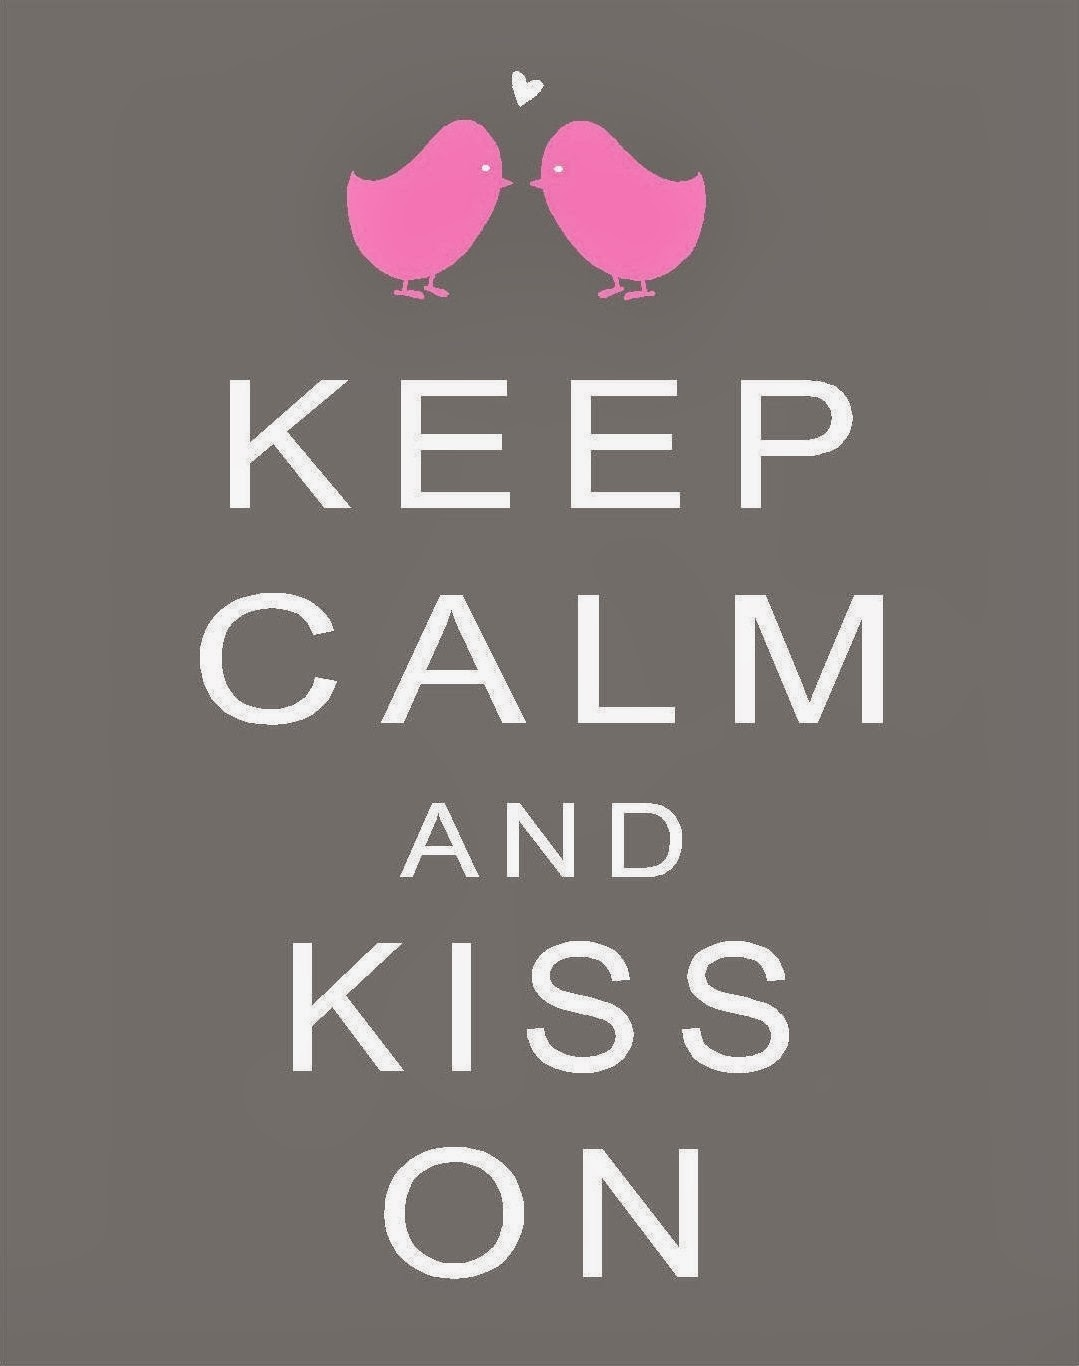 http://lollyjane.com/keep-calm-kiss-on/